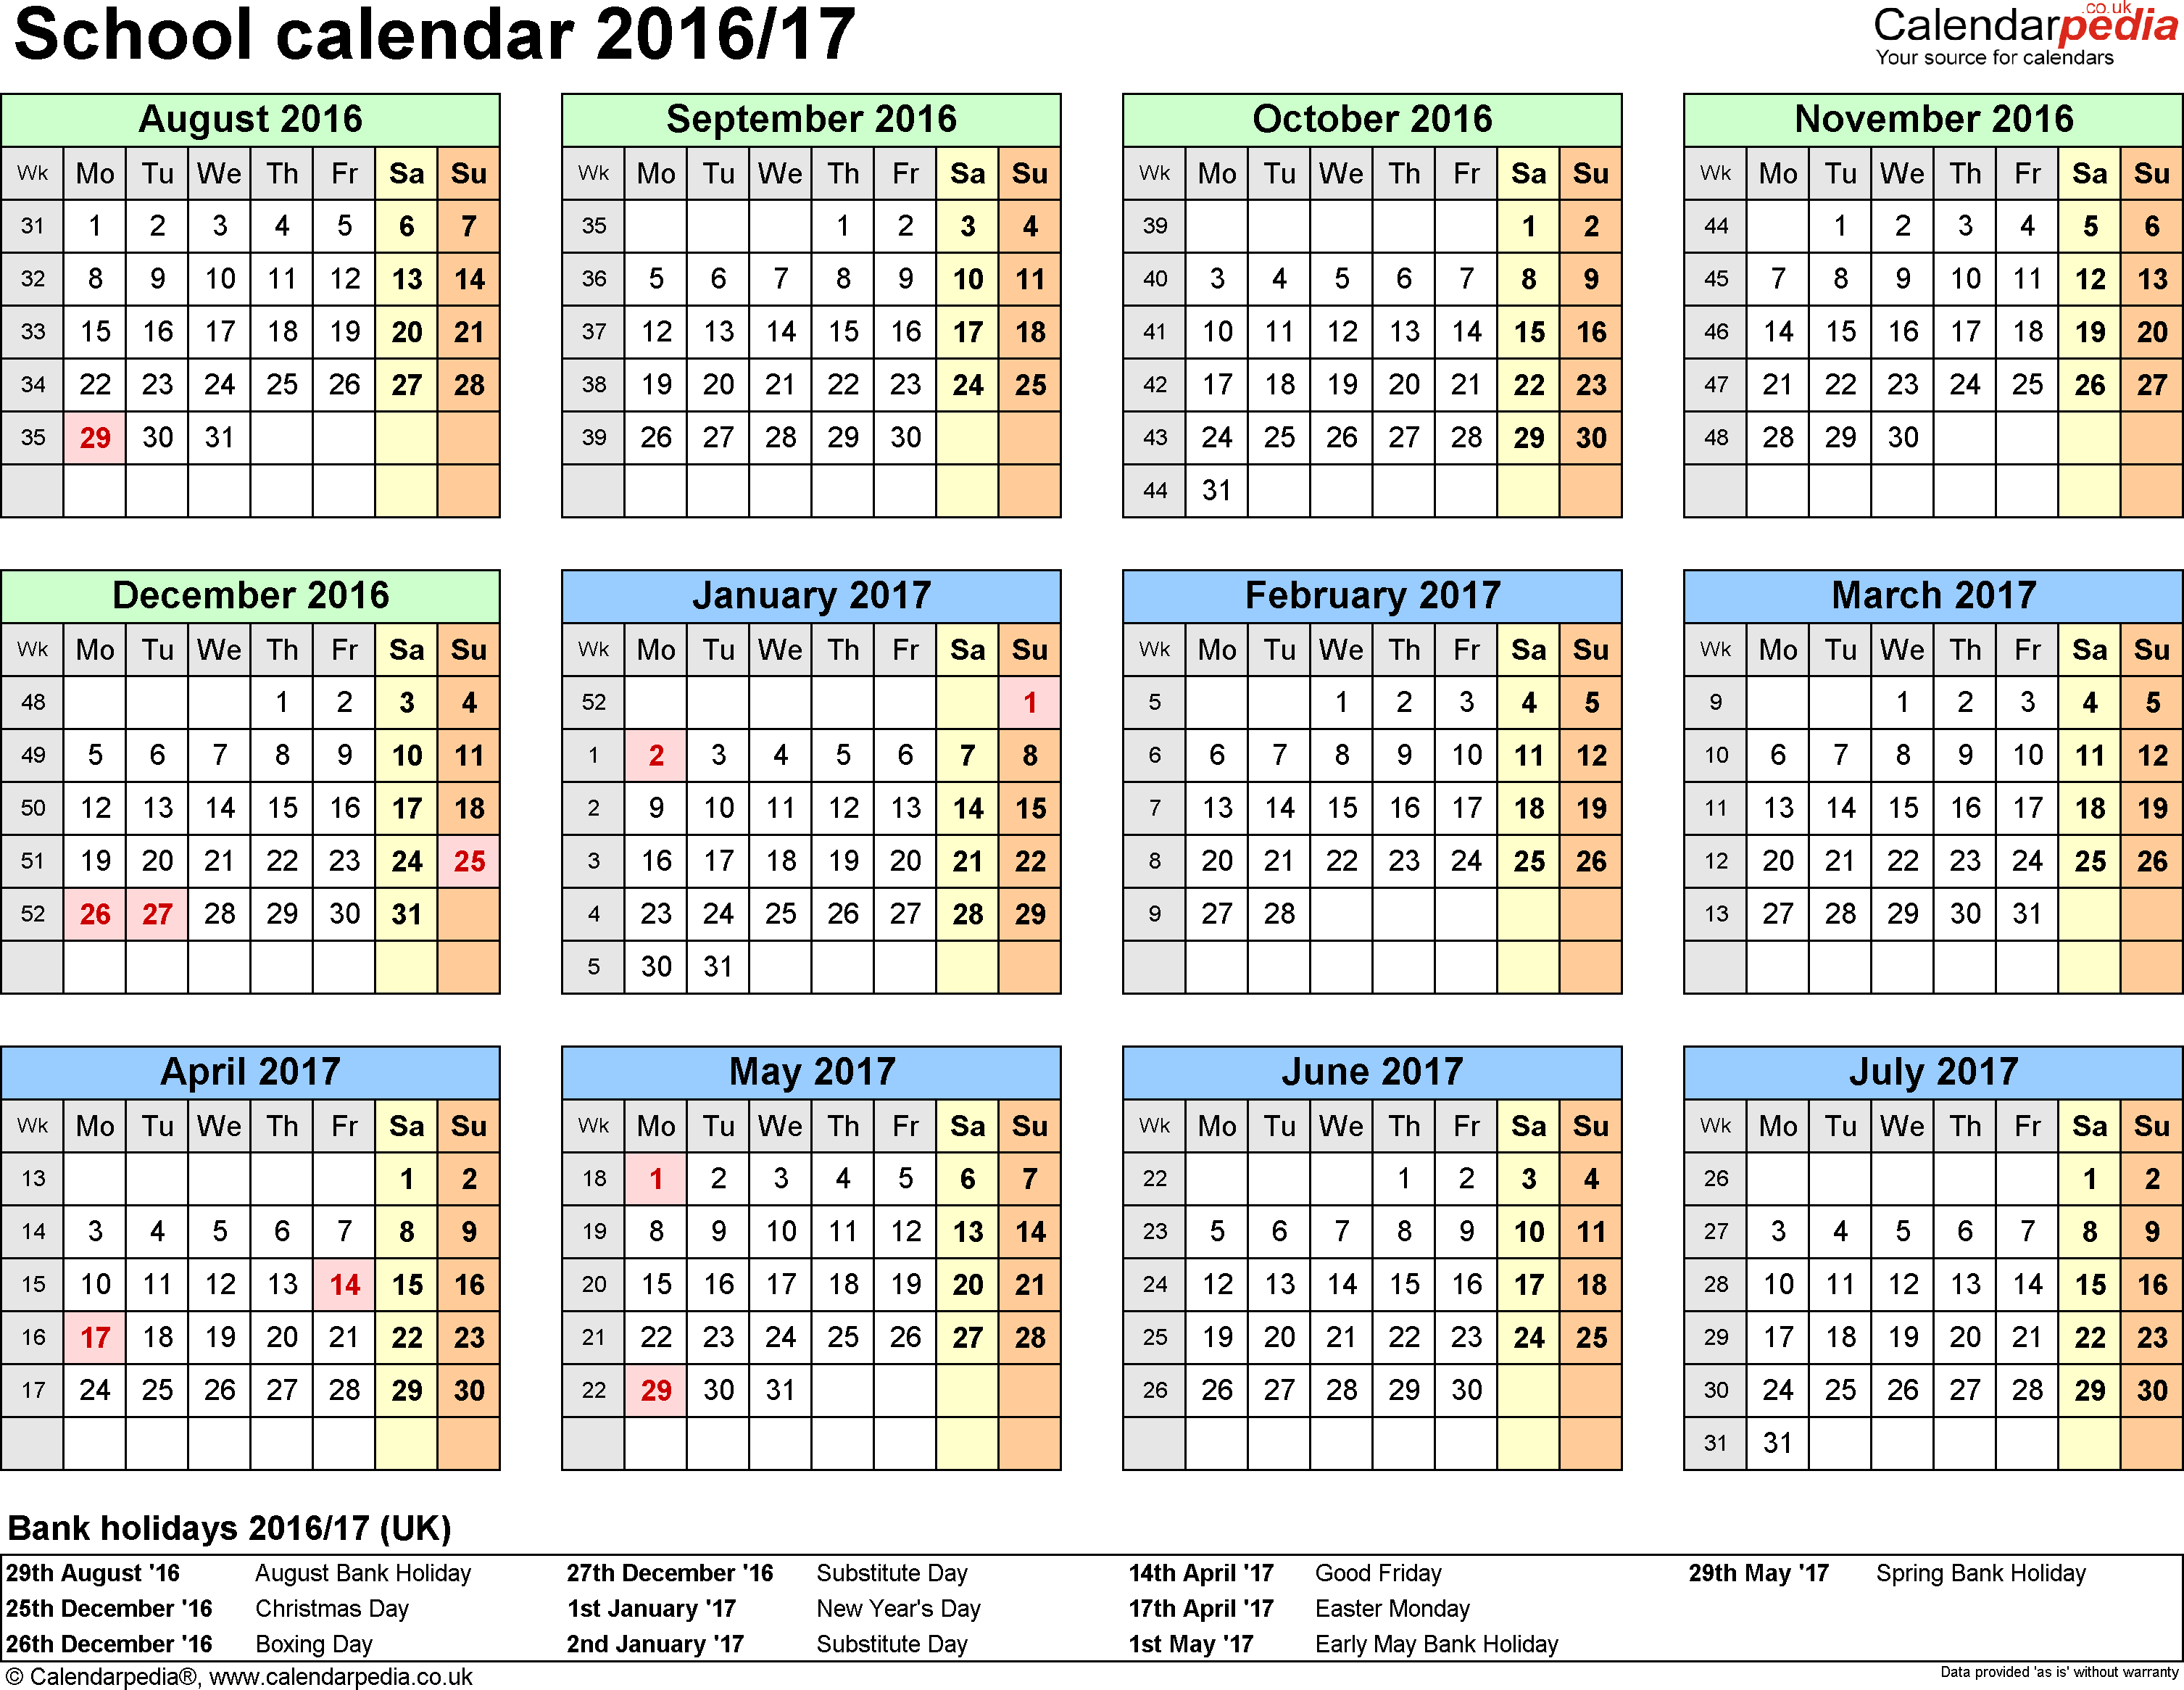 Download Template 4: School year calendars 2016/17 for Microsoft Excel, year at a glance, 1 page